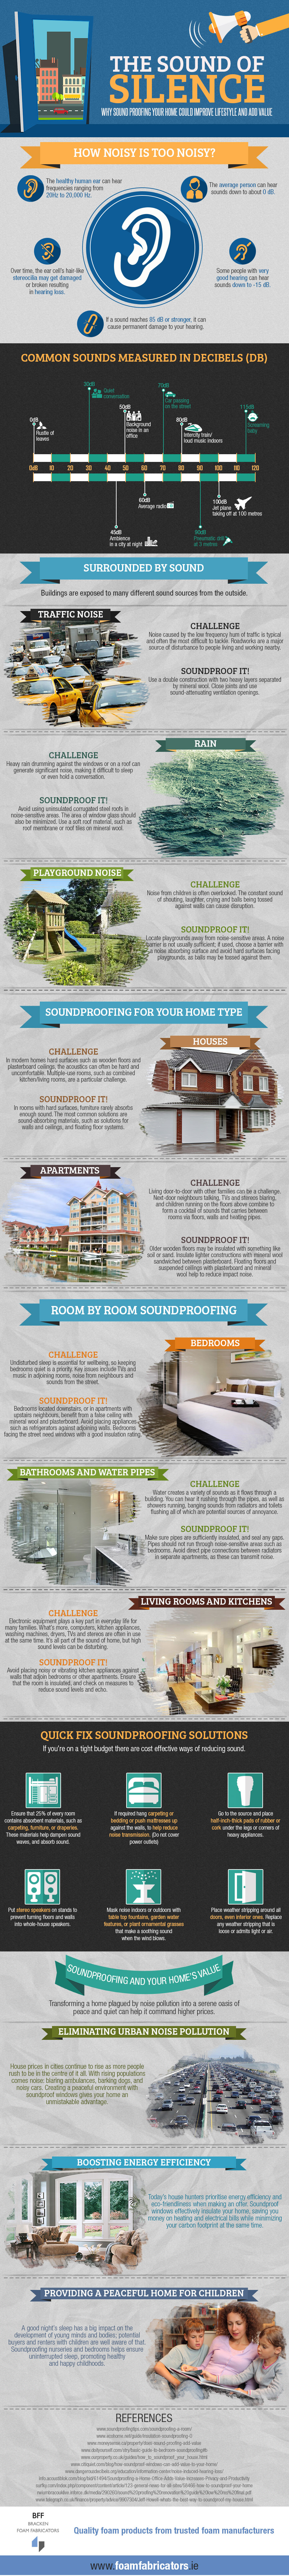 The Sound of Silence: Sound Proofing Your Home